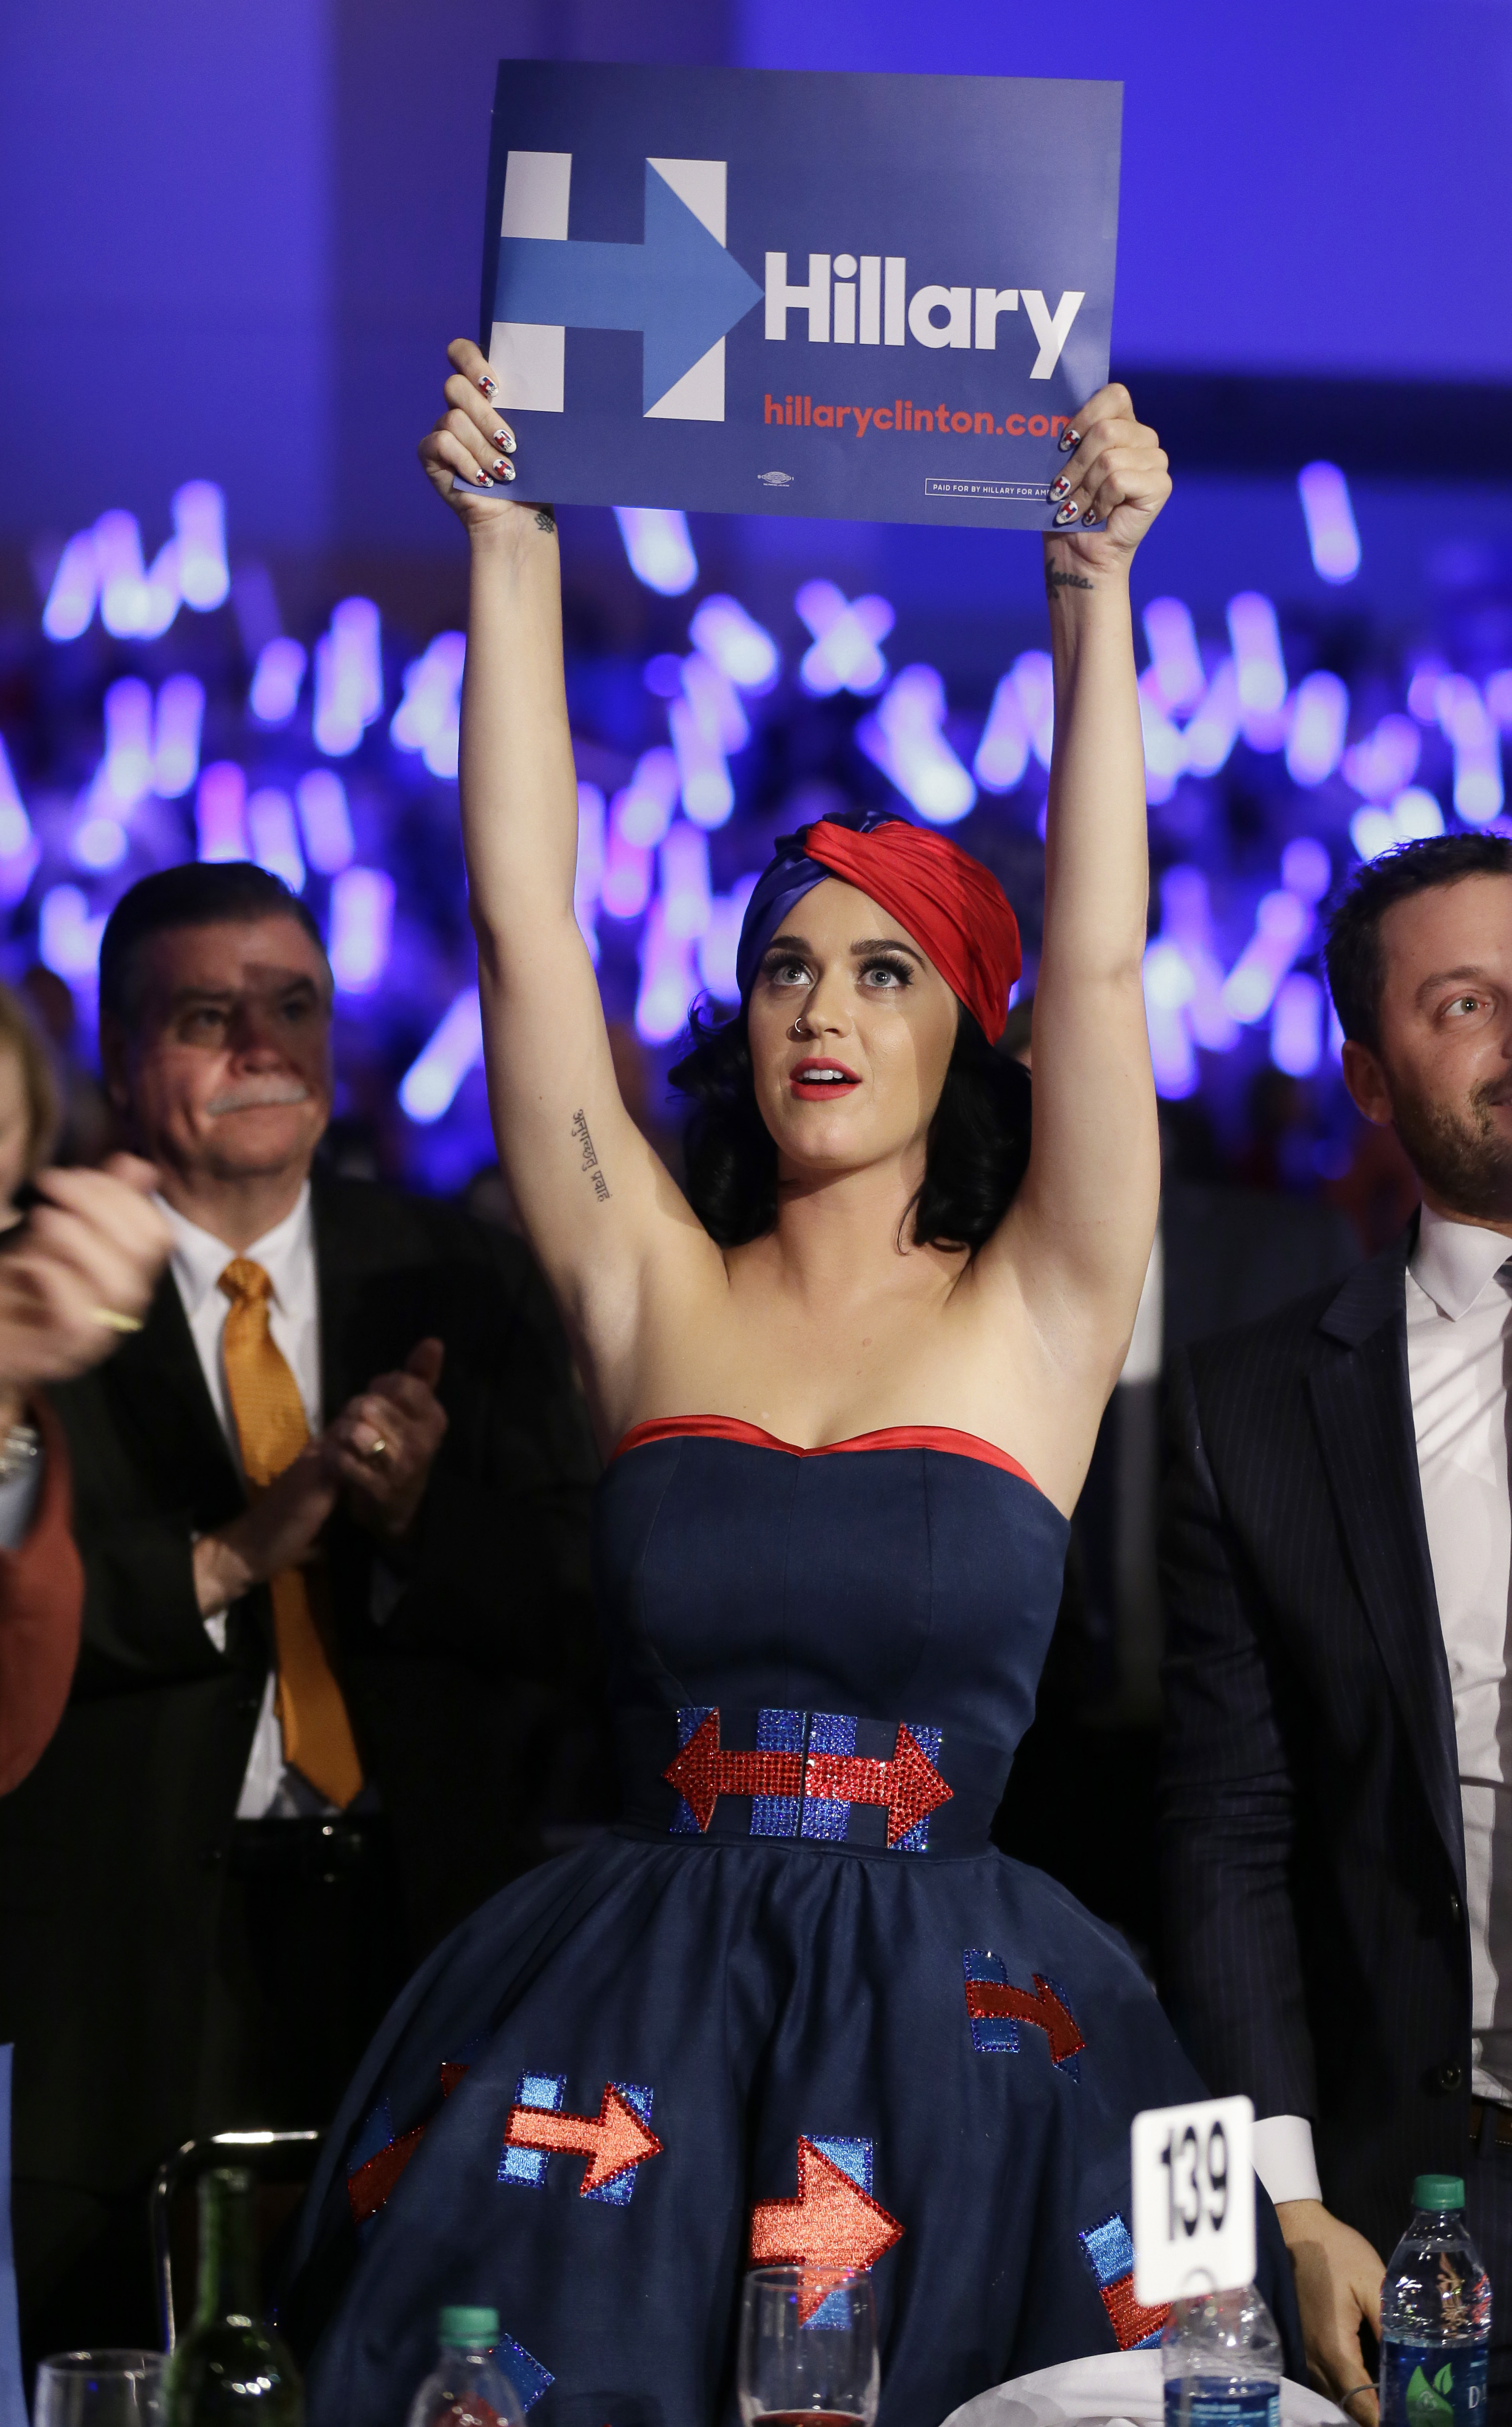 Katy Perry reacts to Donald Trump's second debate performance